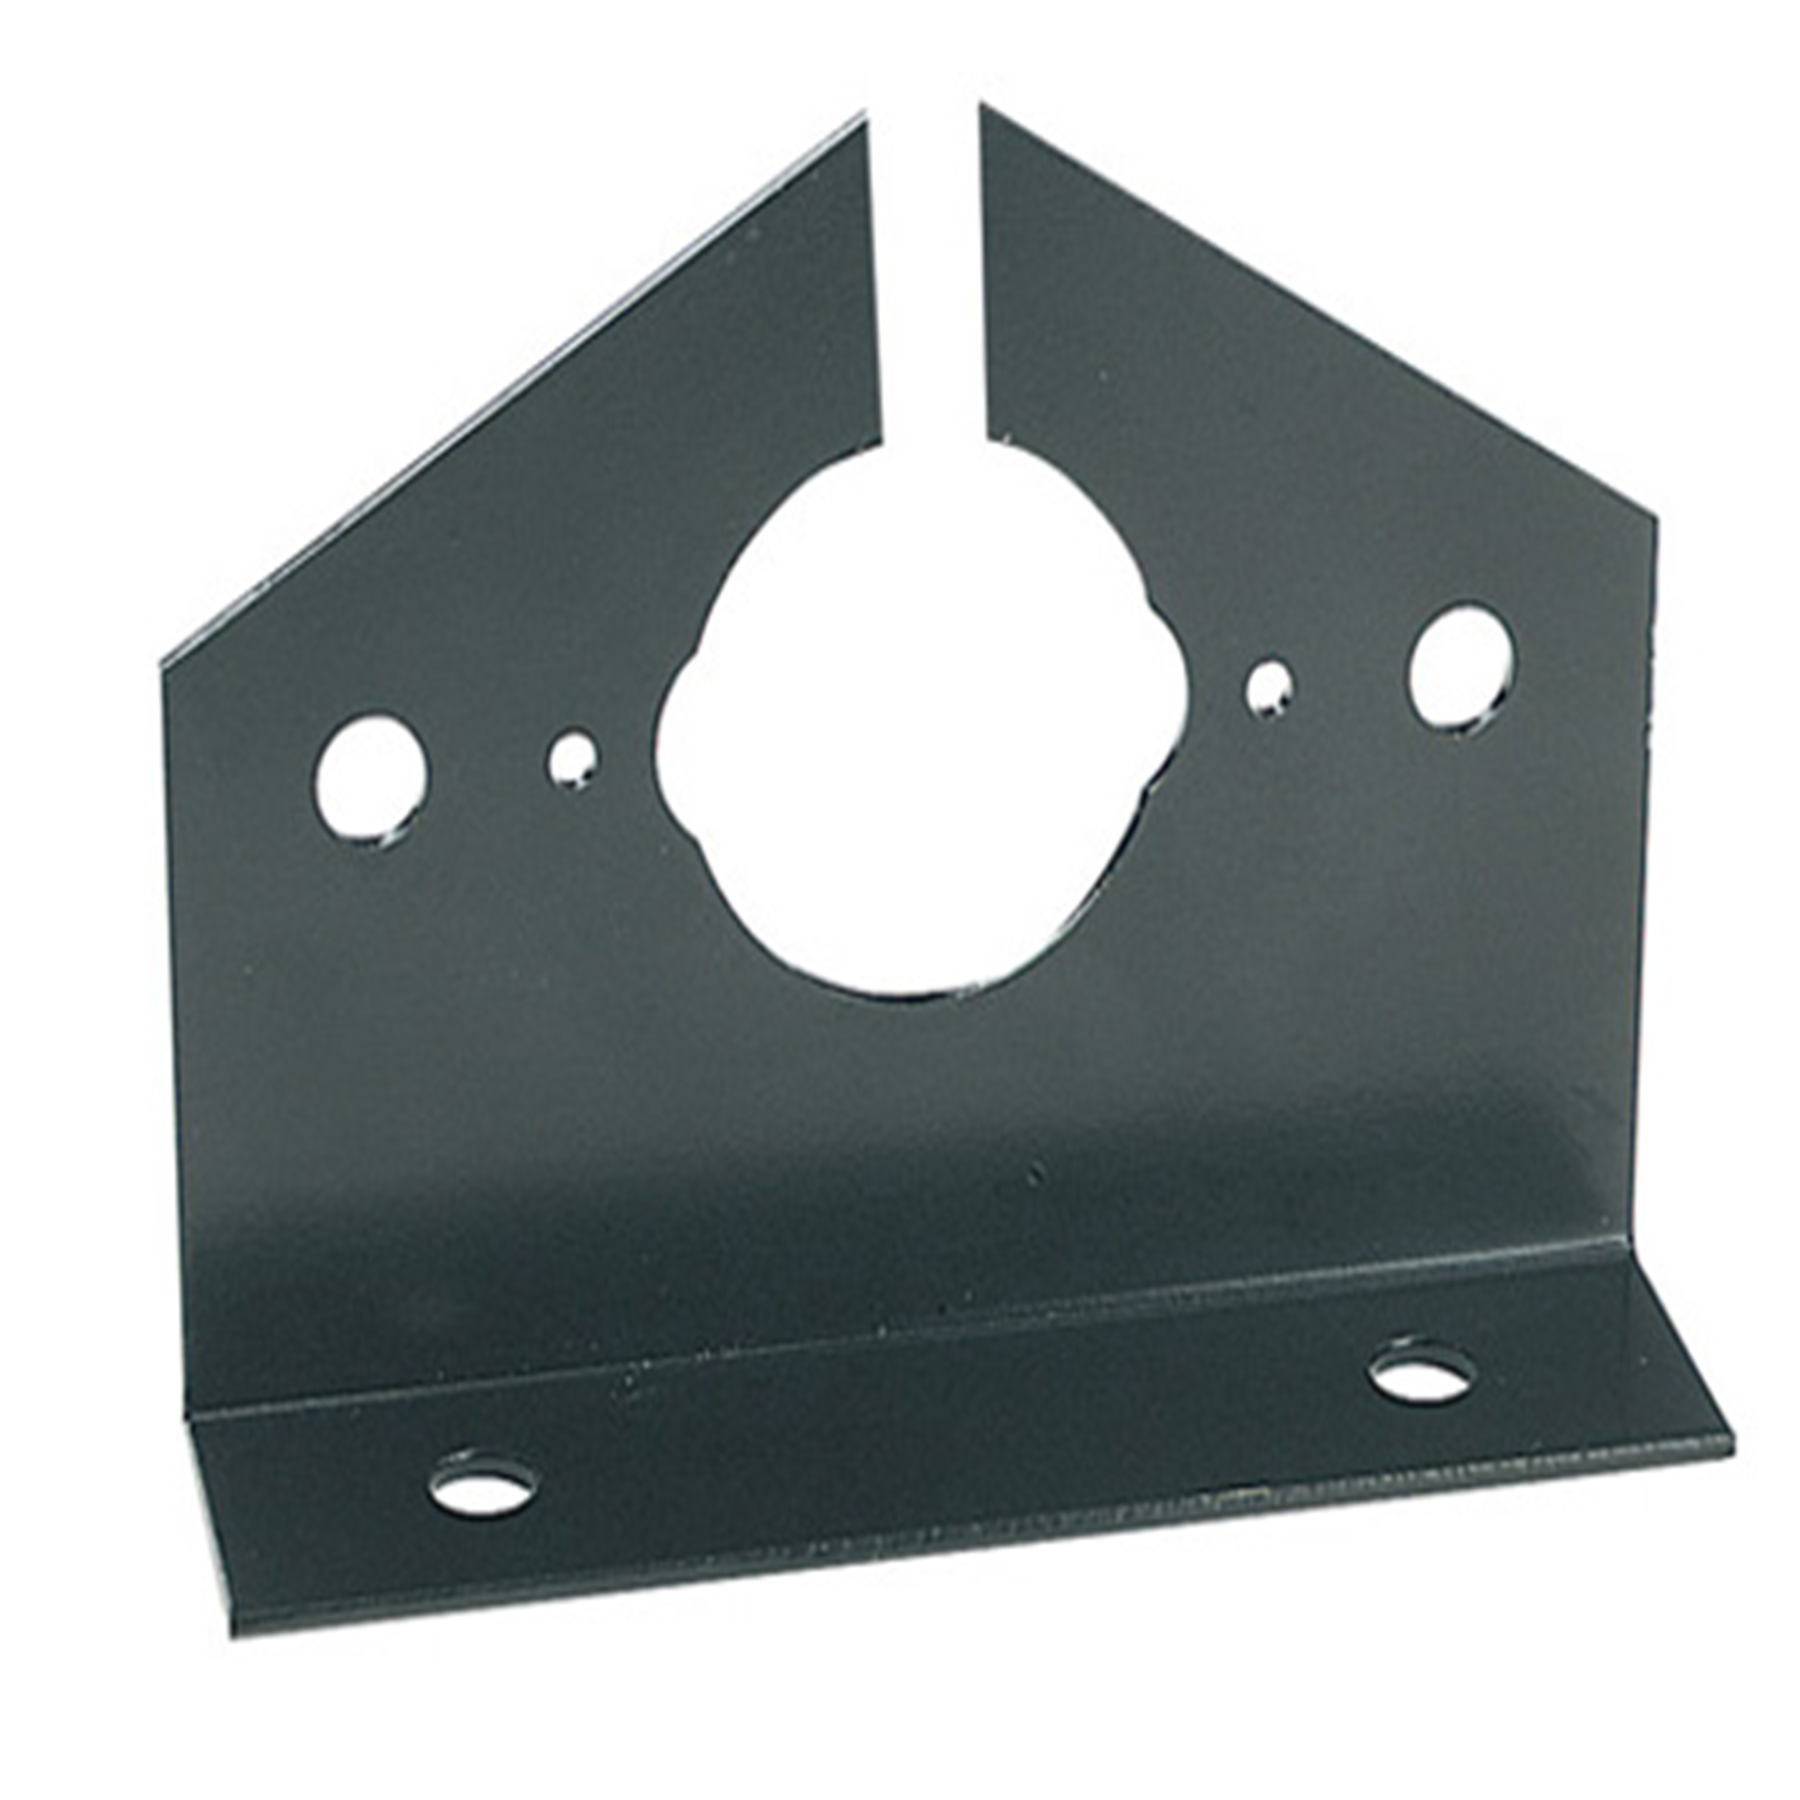 Hopkins 4,5,6 MOUNTING BRACKET